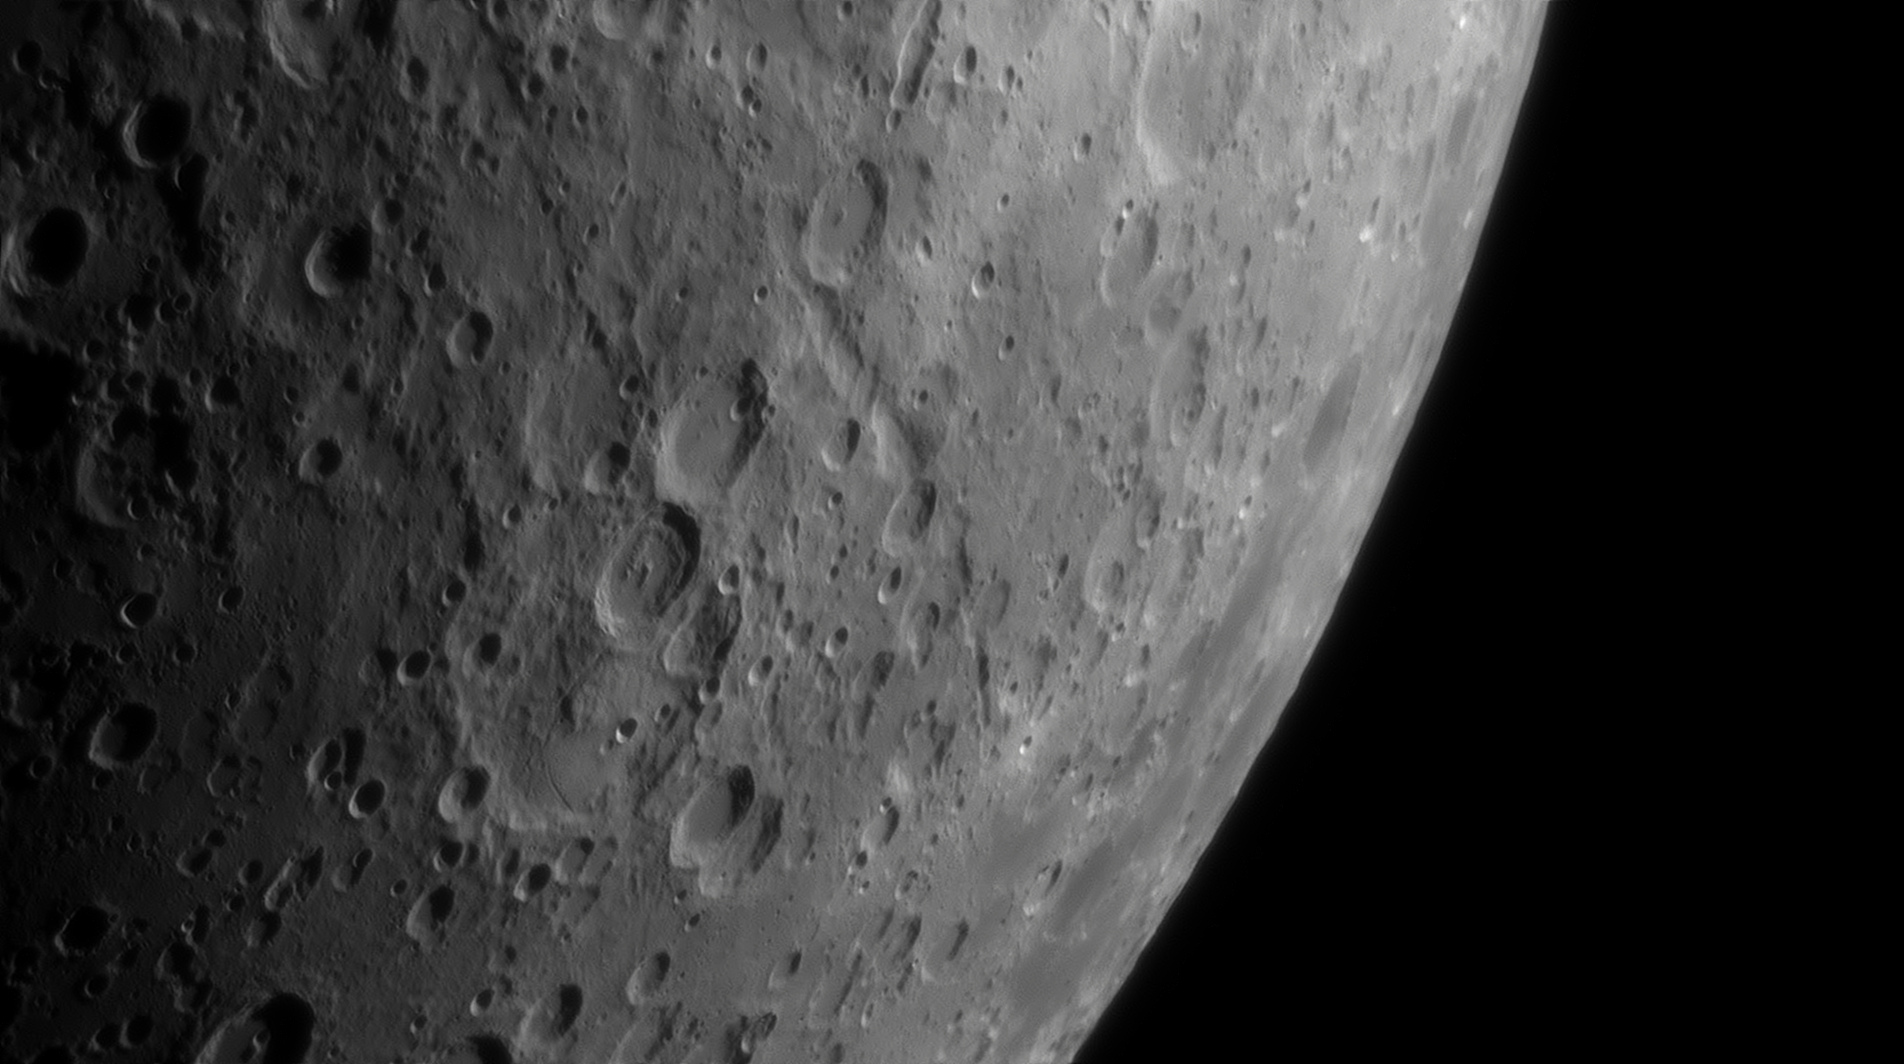 5cfc230543566_Moon_190433_080619_ZWOASI290MM_IR_650_nm_AS_P45_lapl4_ap355.jpg.017283e05b30fdbeabb7f9457640518e.jpg